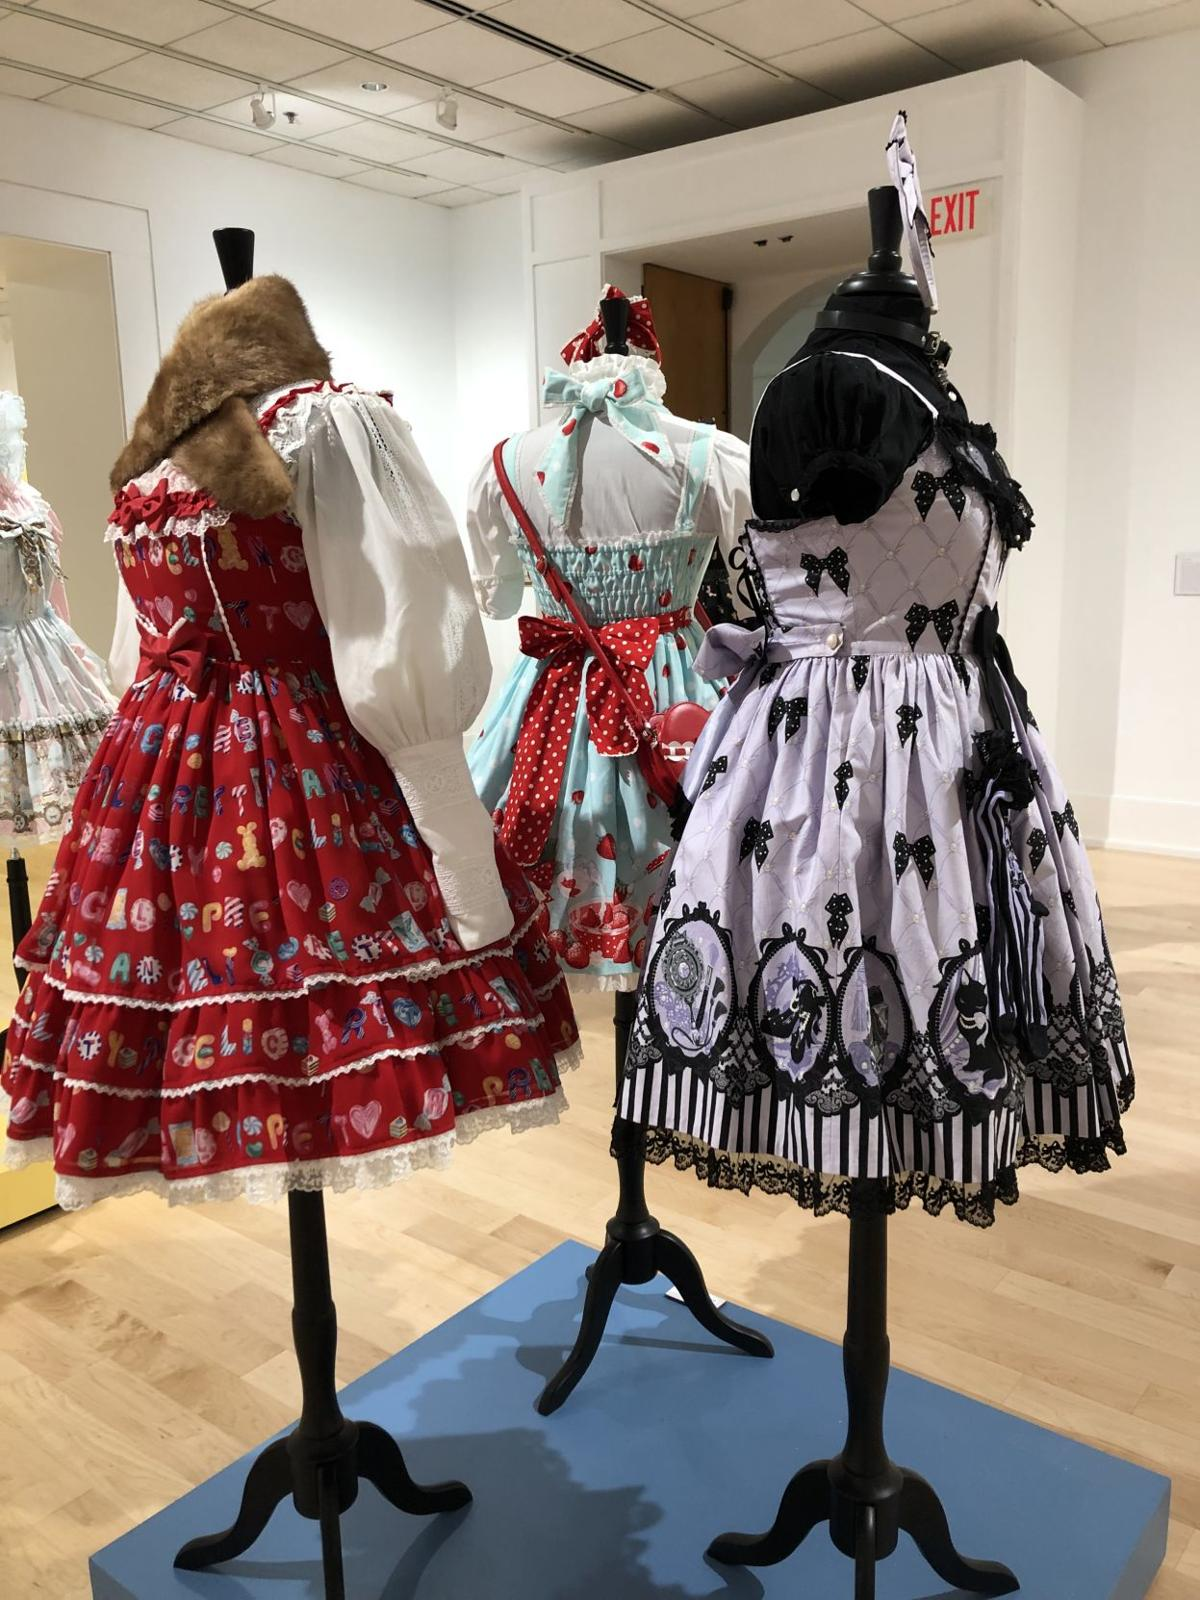 dresses -- collections exhibit